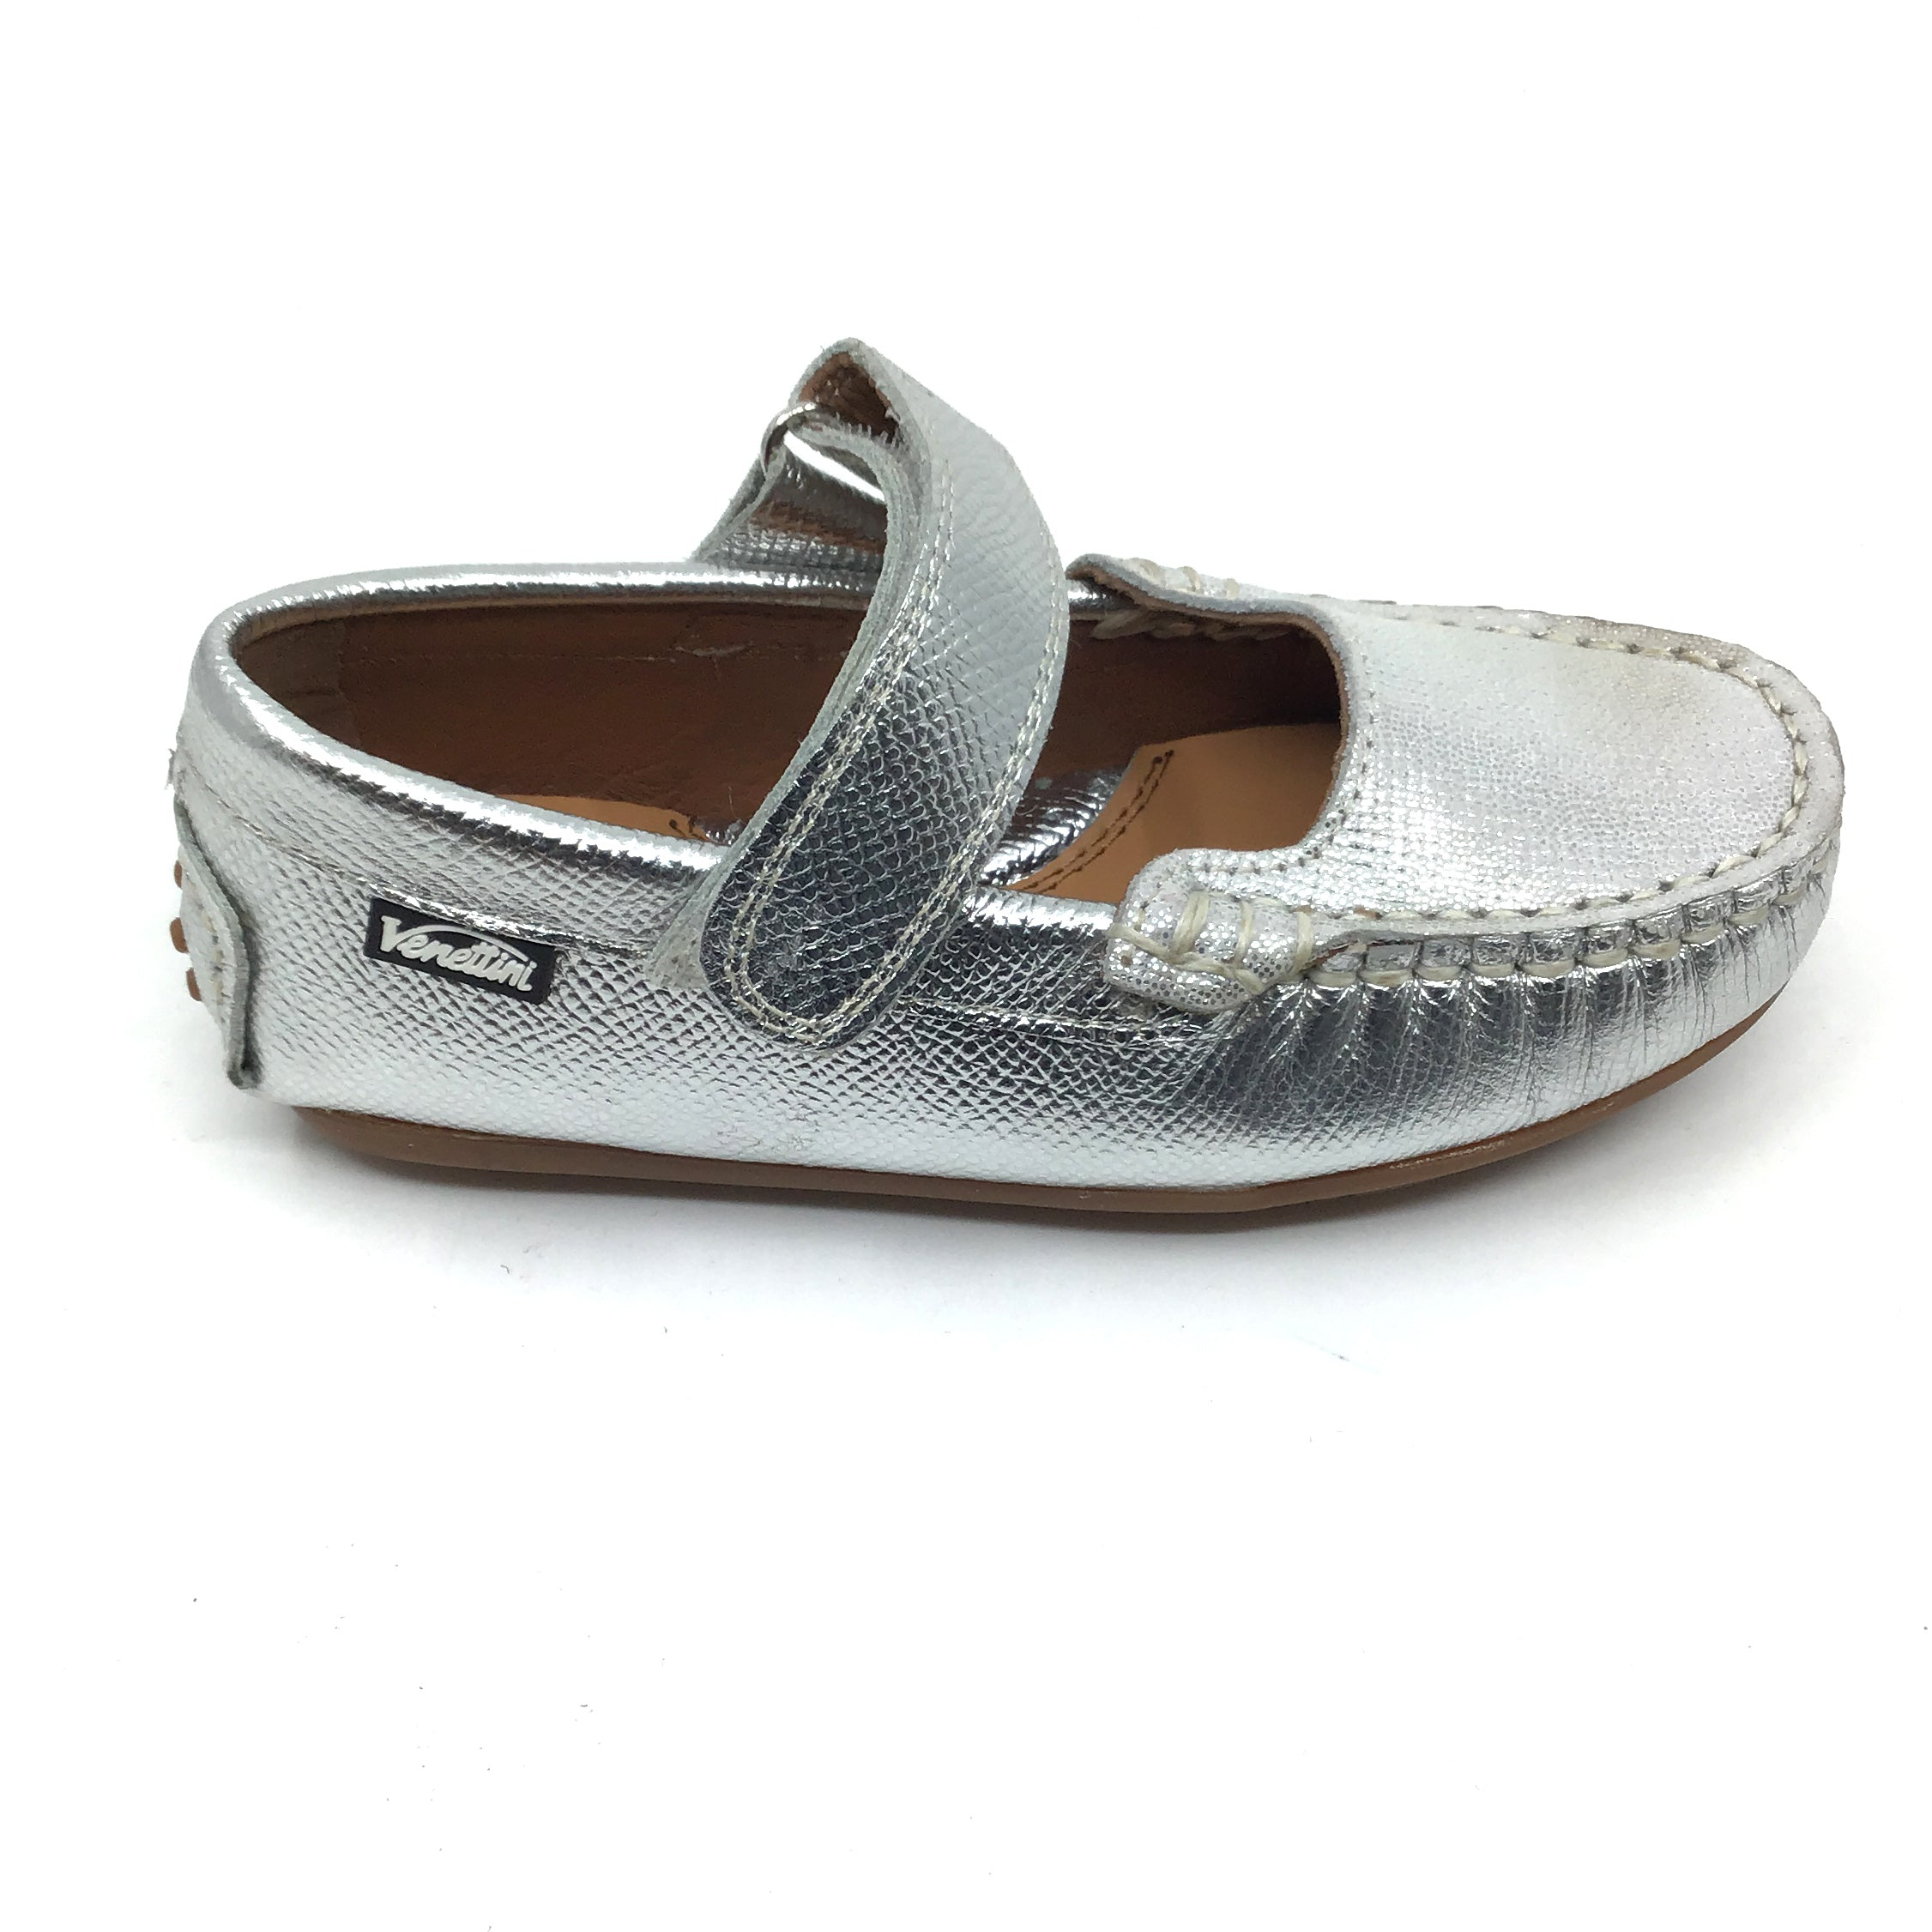 Venettini Silver Velcro Shoe with Front Texture